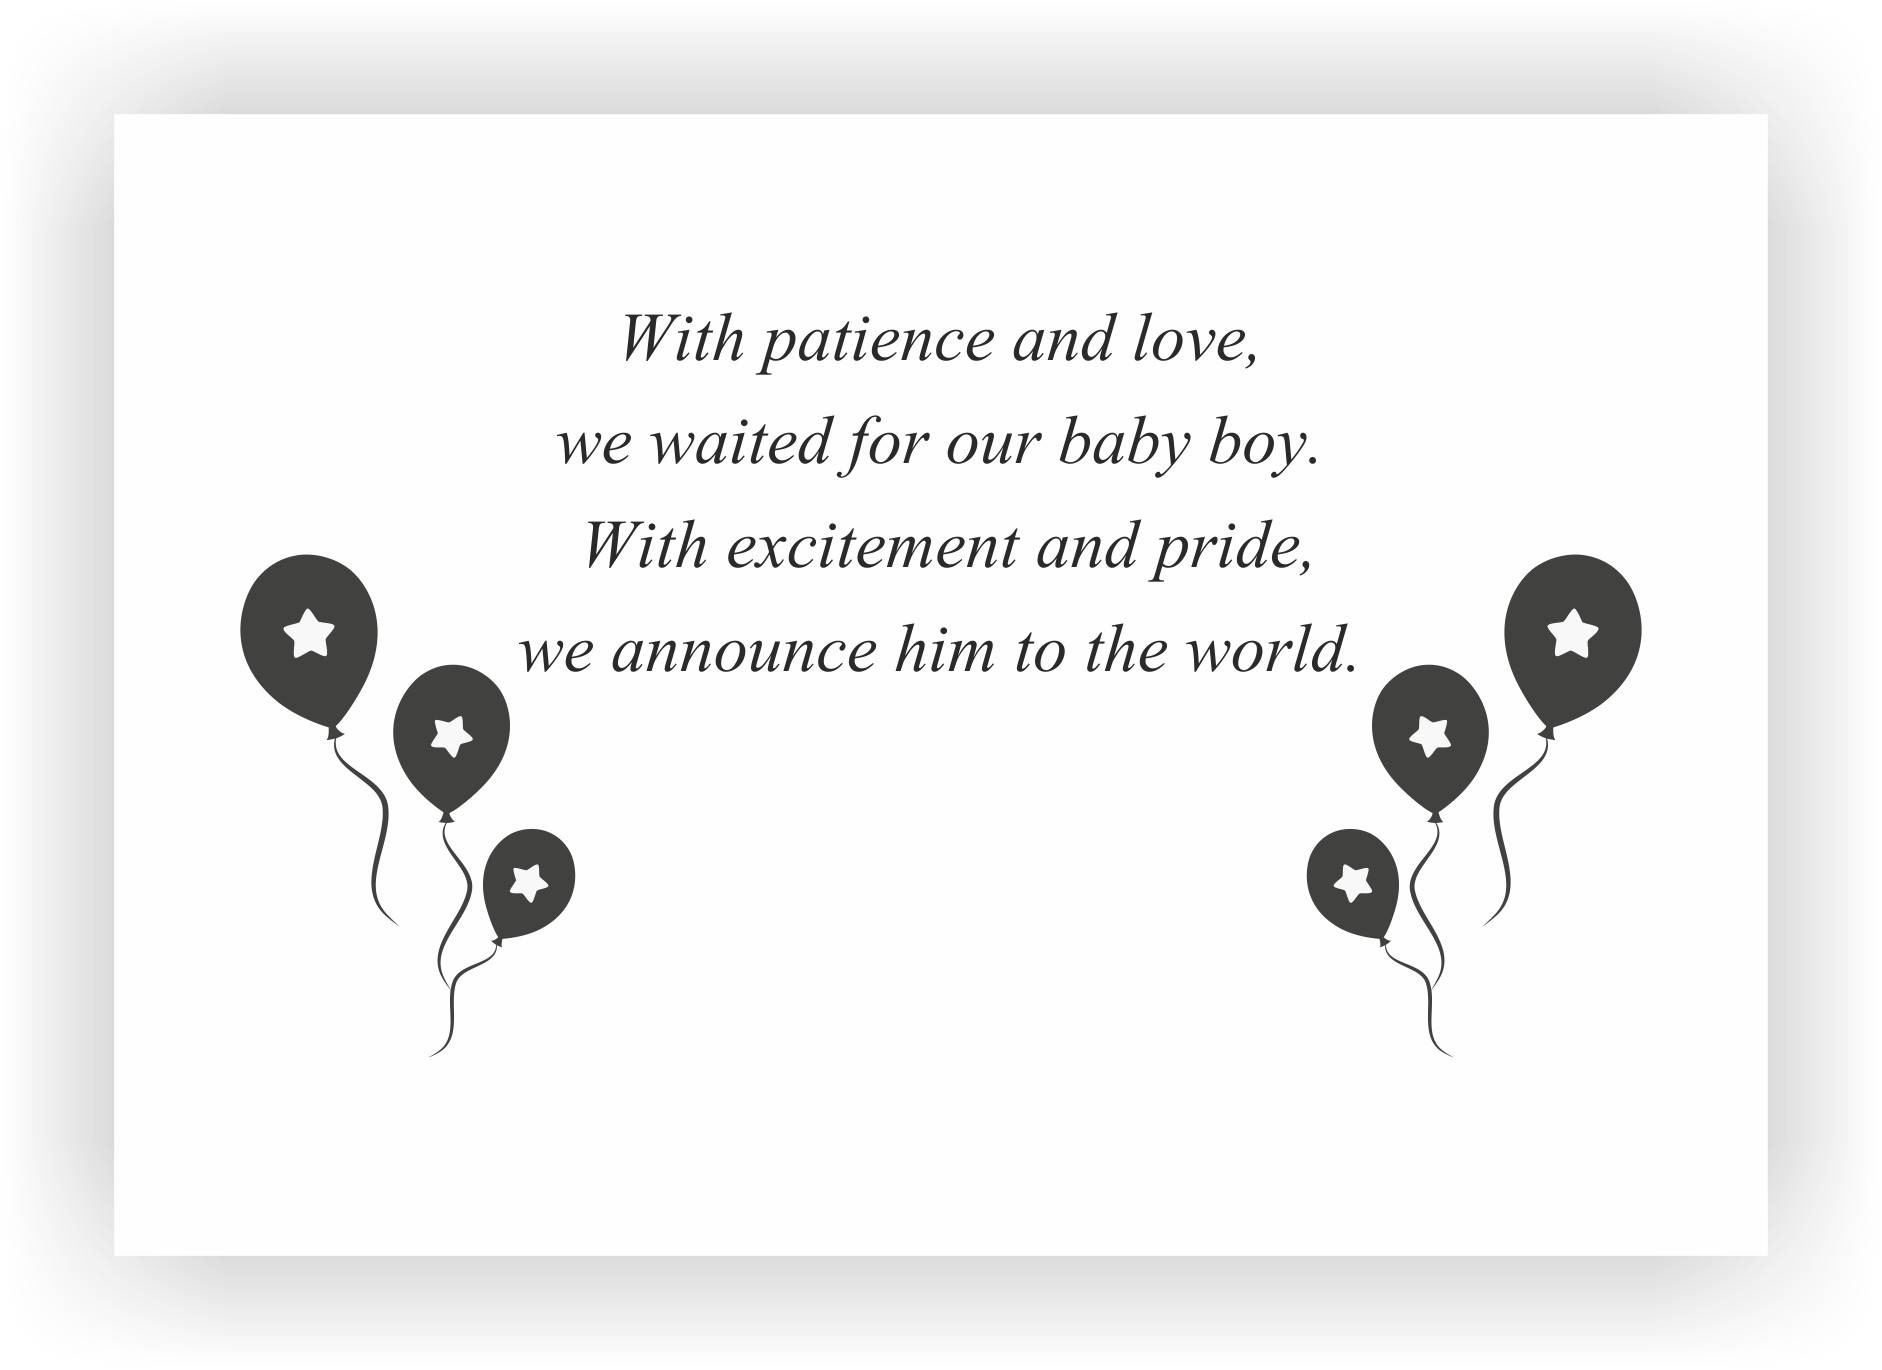 Newborn baby announcement message I Messages for the new born baby boy –  CHOCOCRAFT